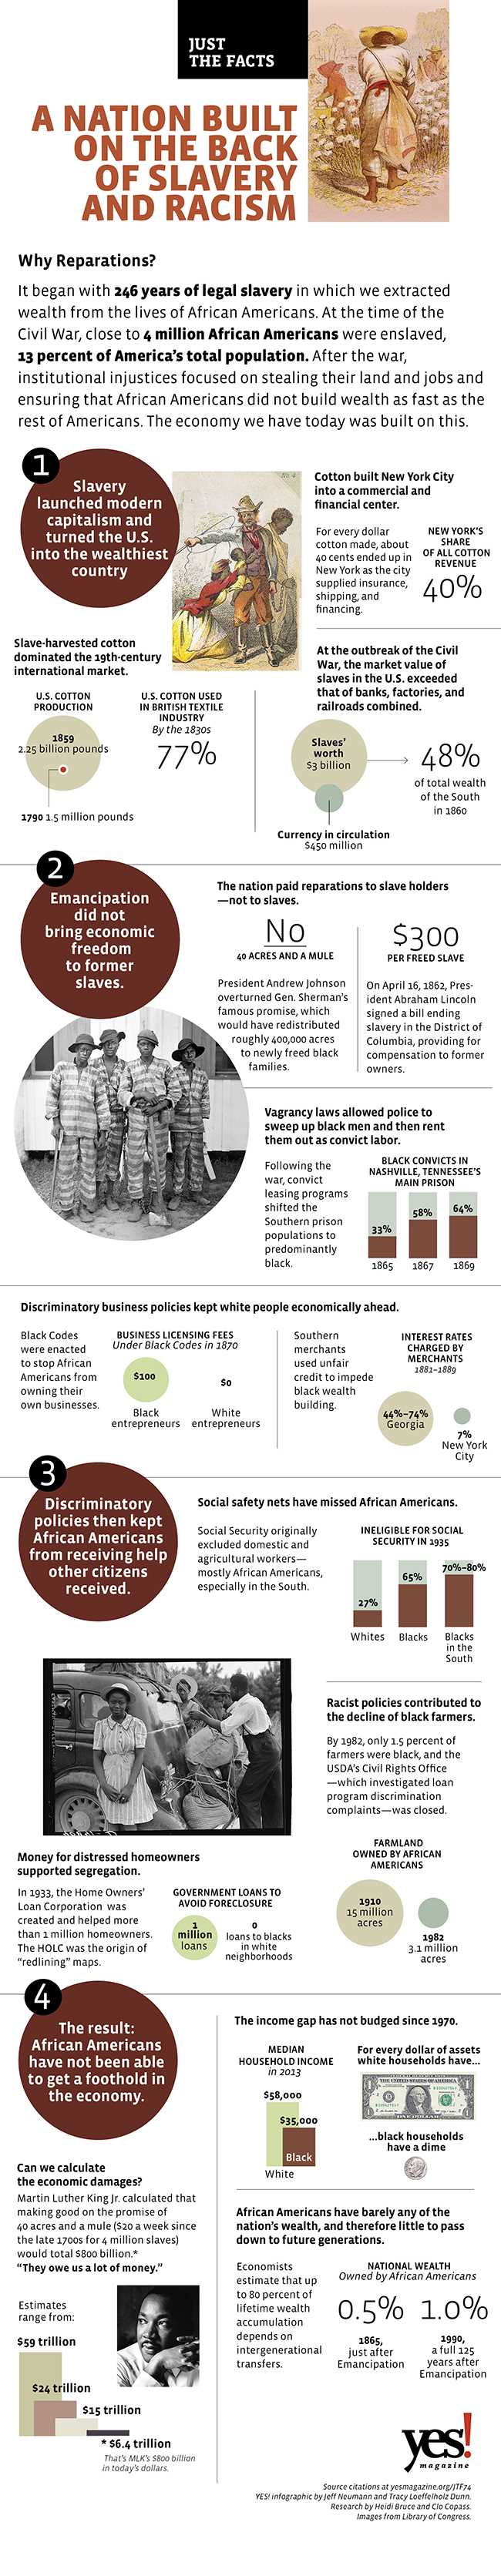 40 Acres and a Mule Would Be at Least $6.4 Trillion Today: What the U.S. Really Owes Black America